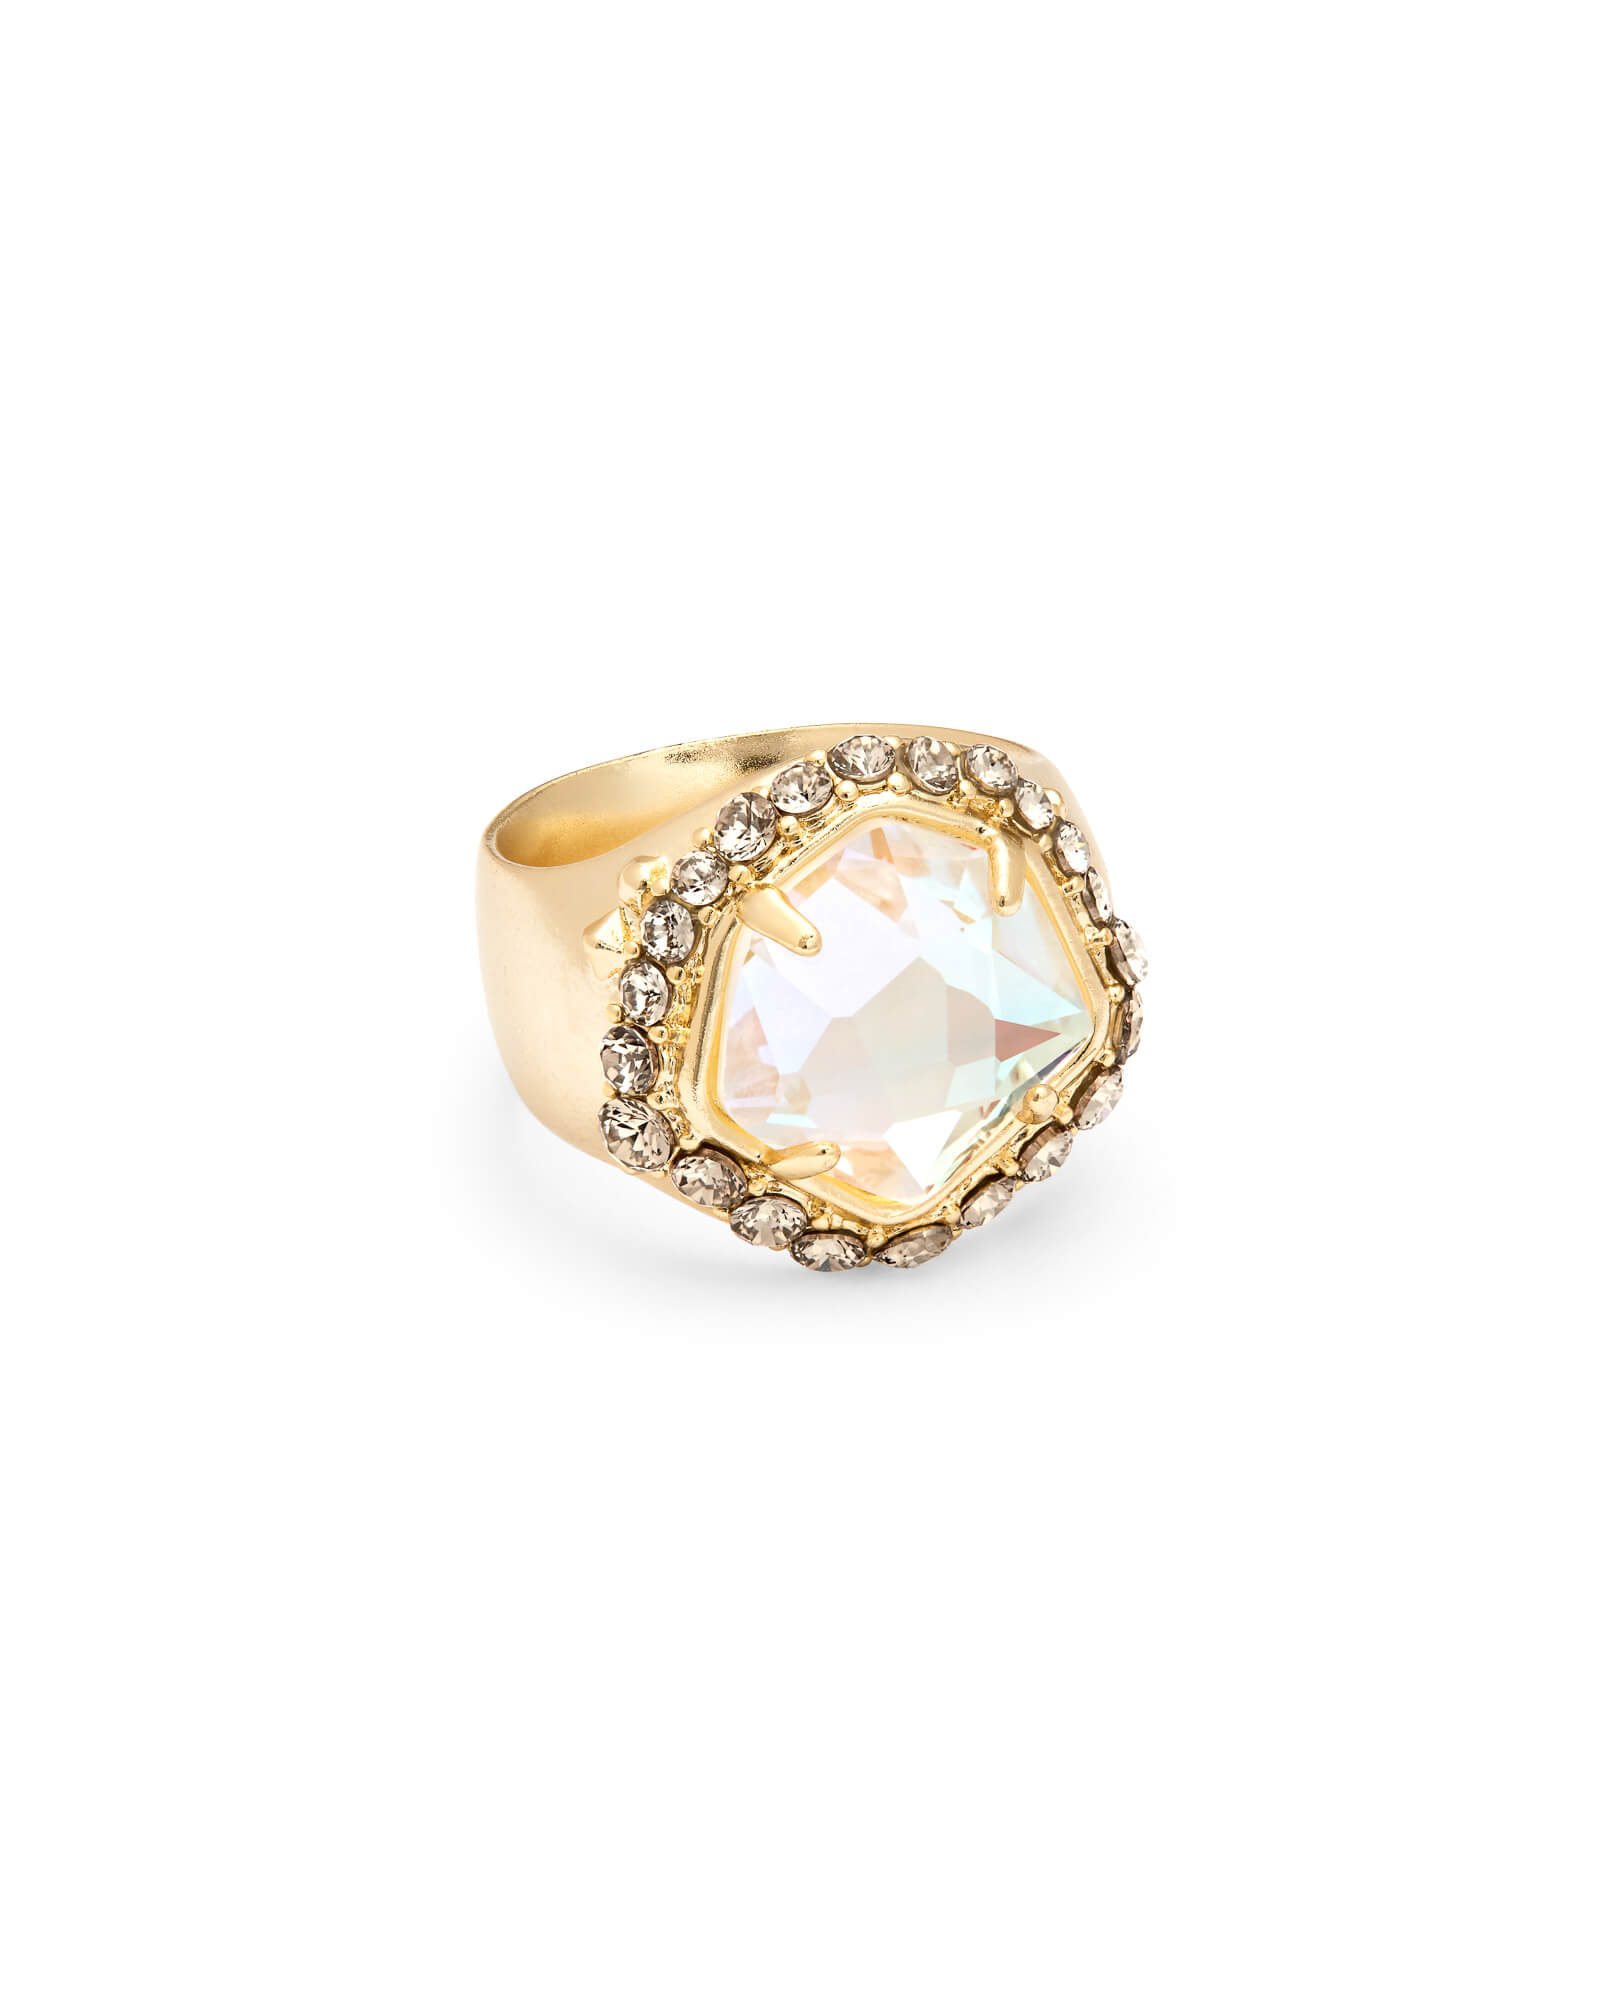 Schuyler Gold Cocktail Ring